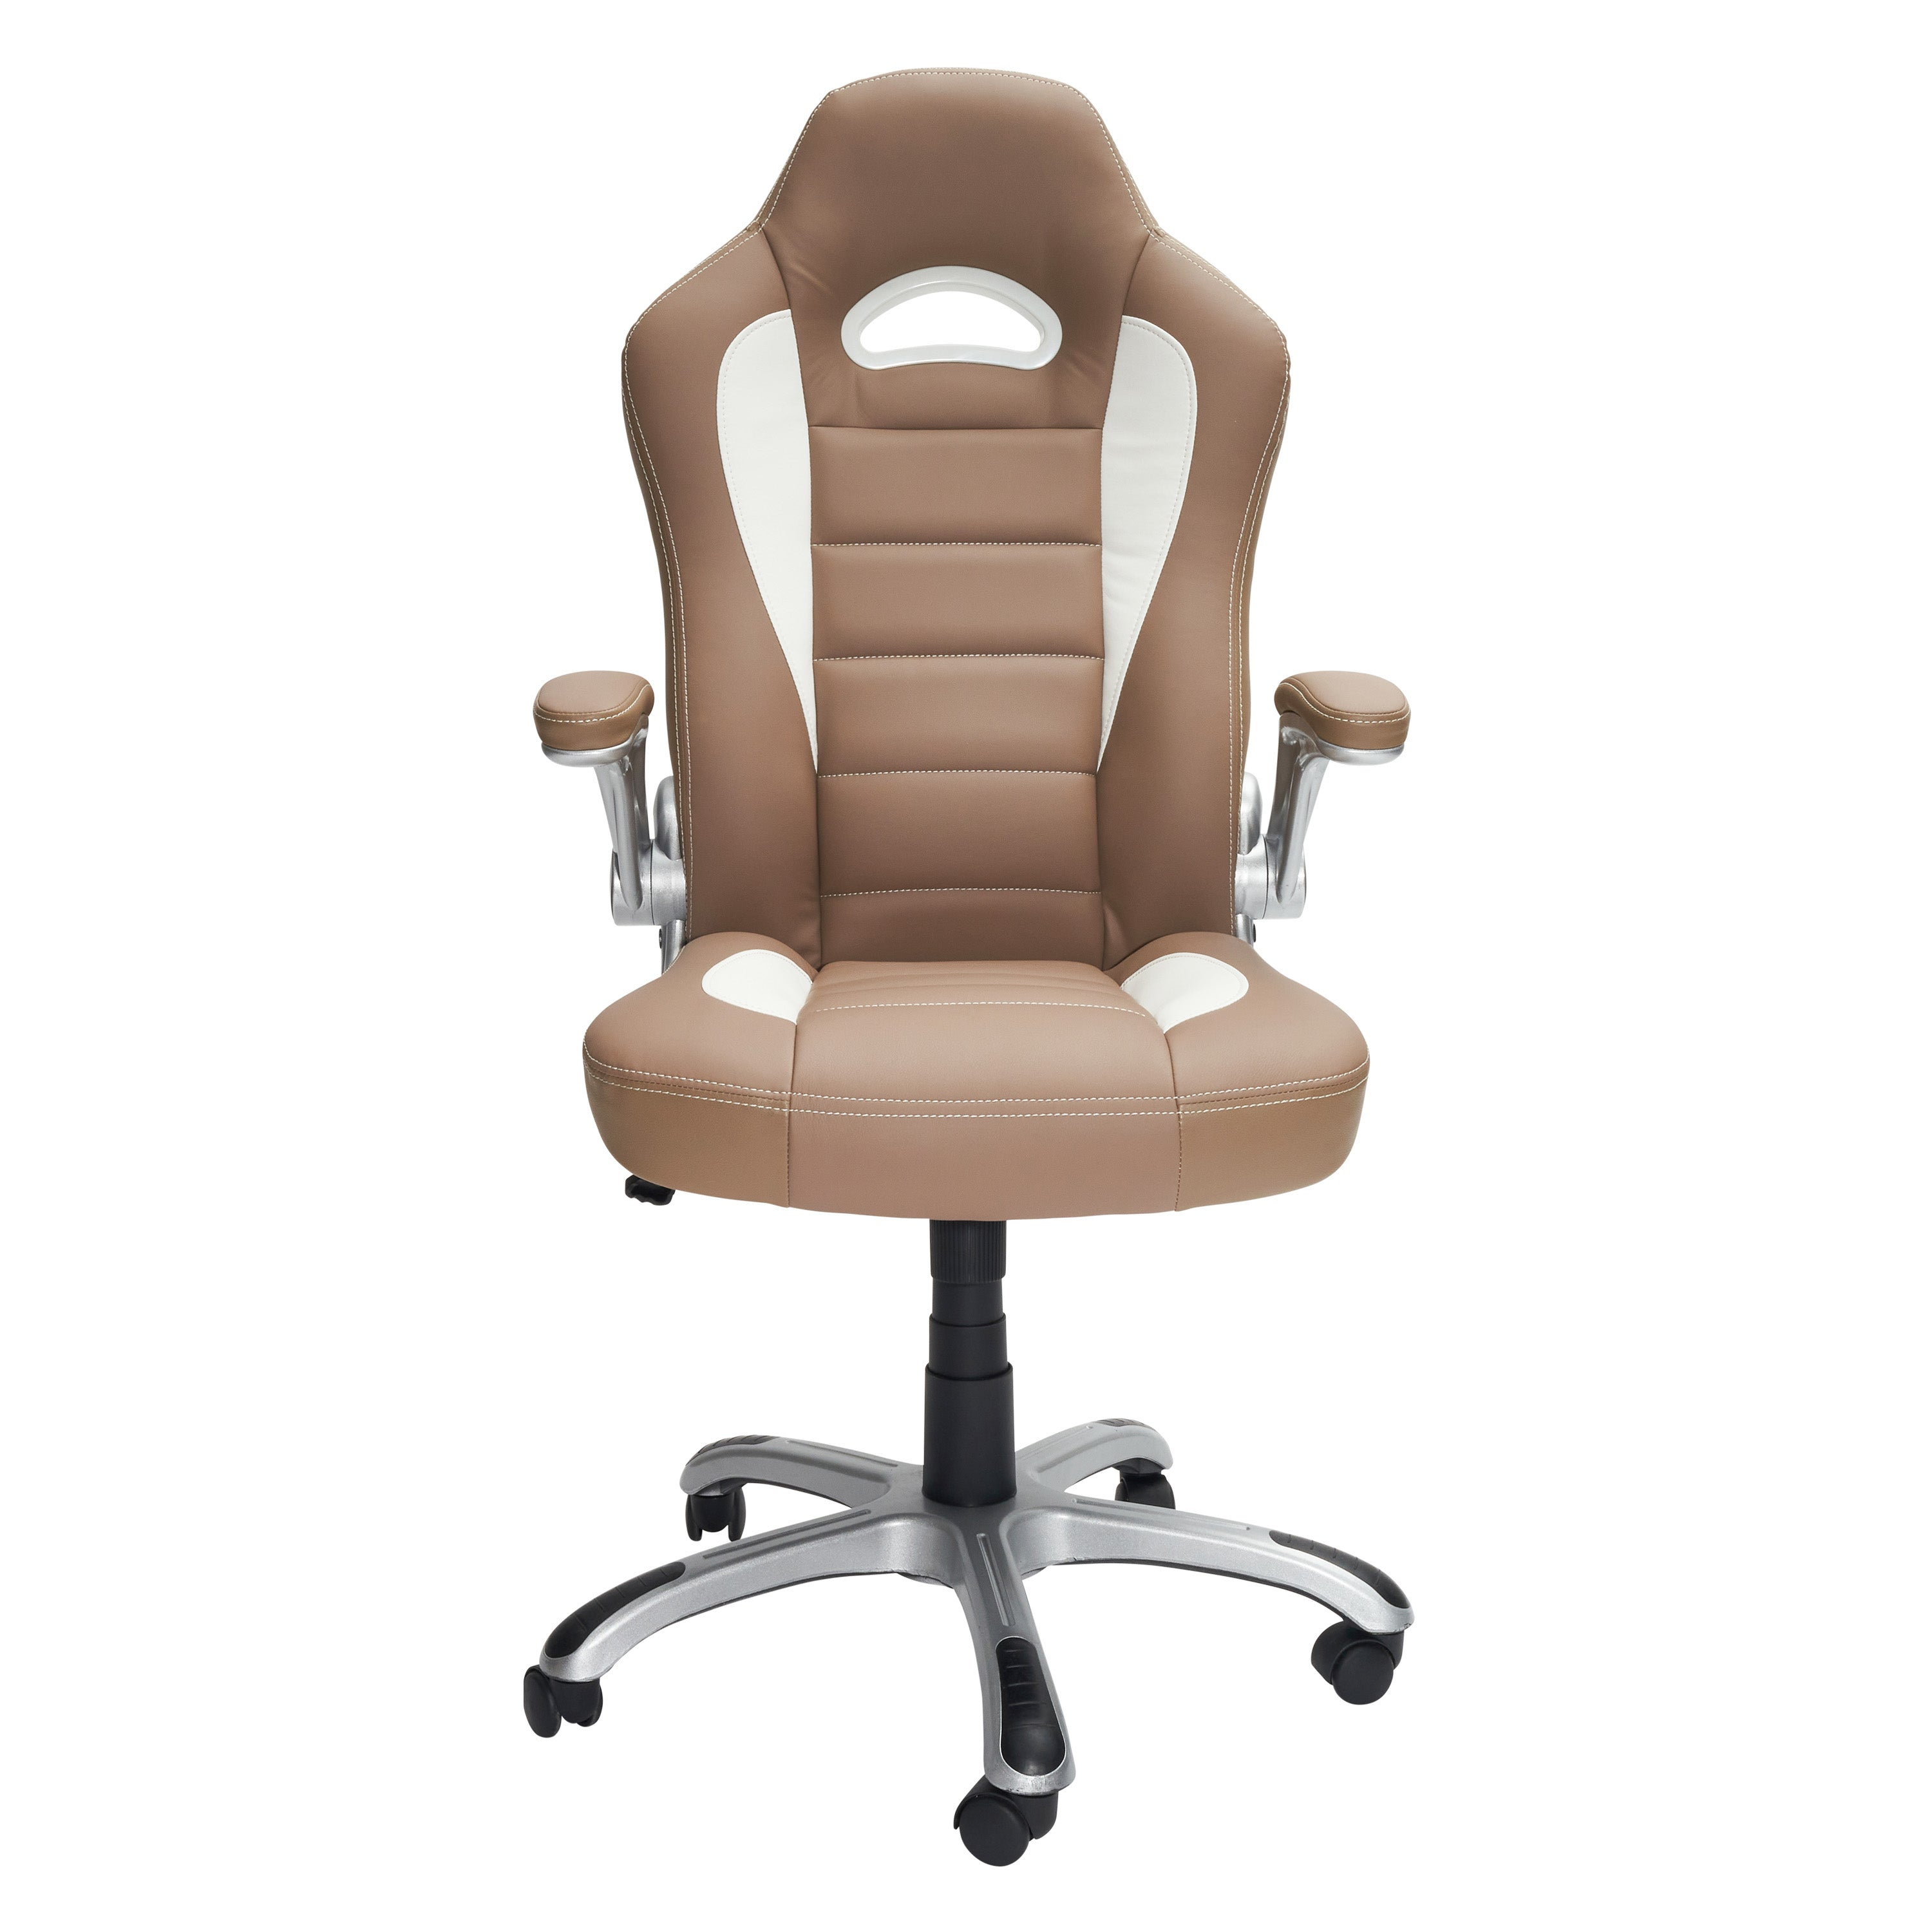 Techni Mobili High Back Executive Sport Race Office